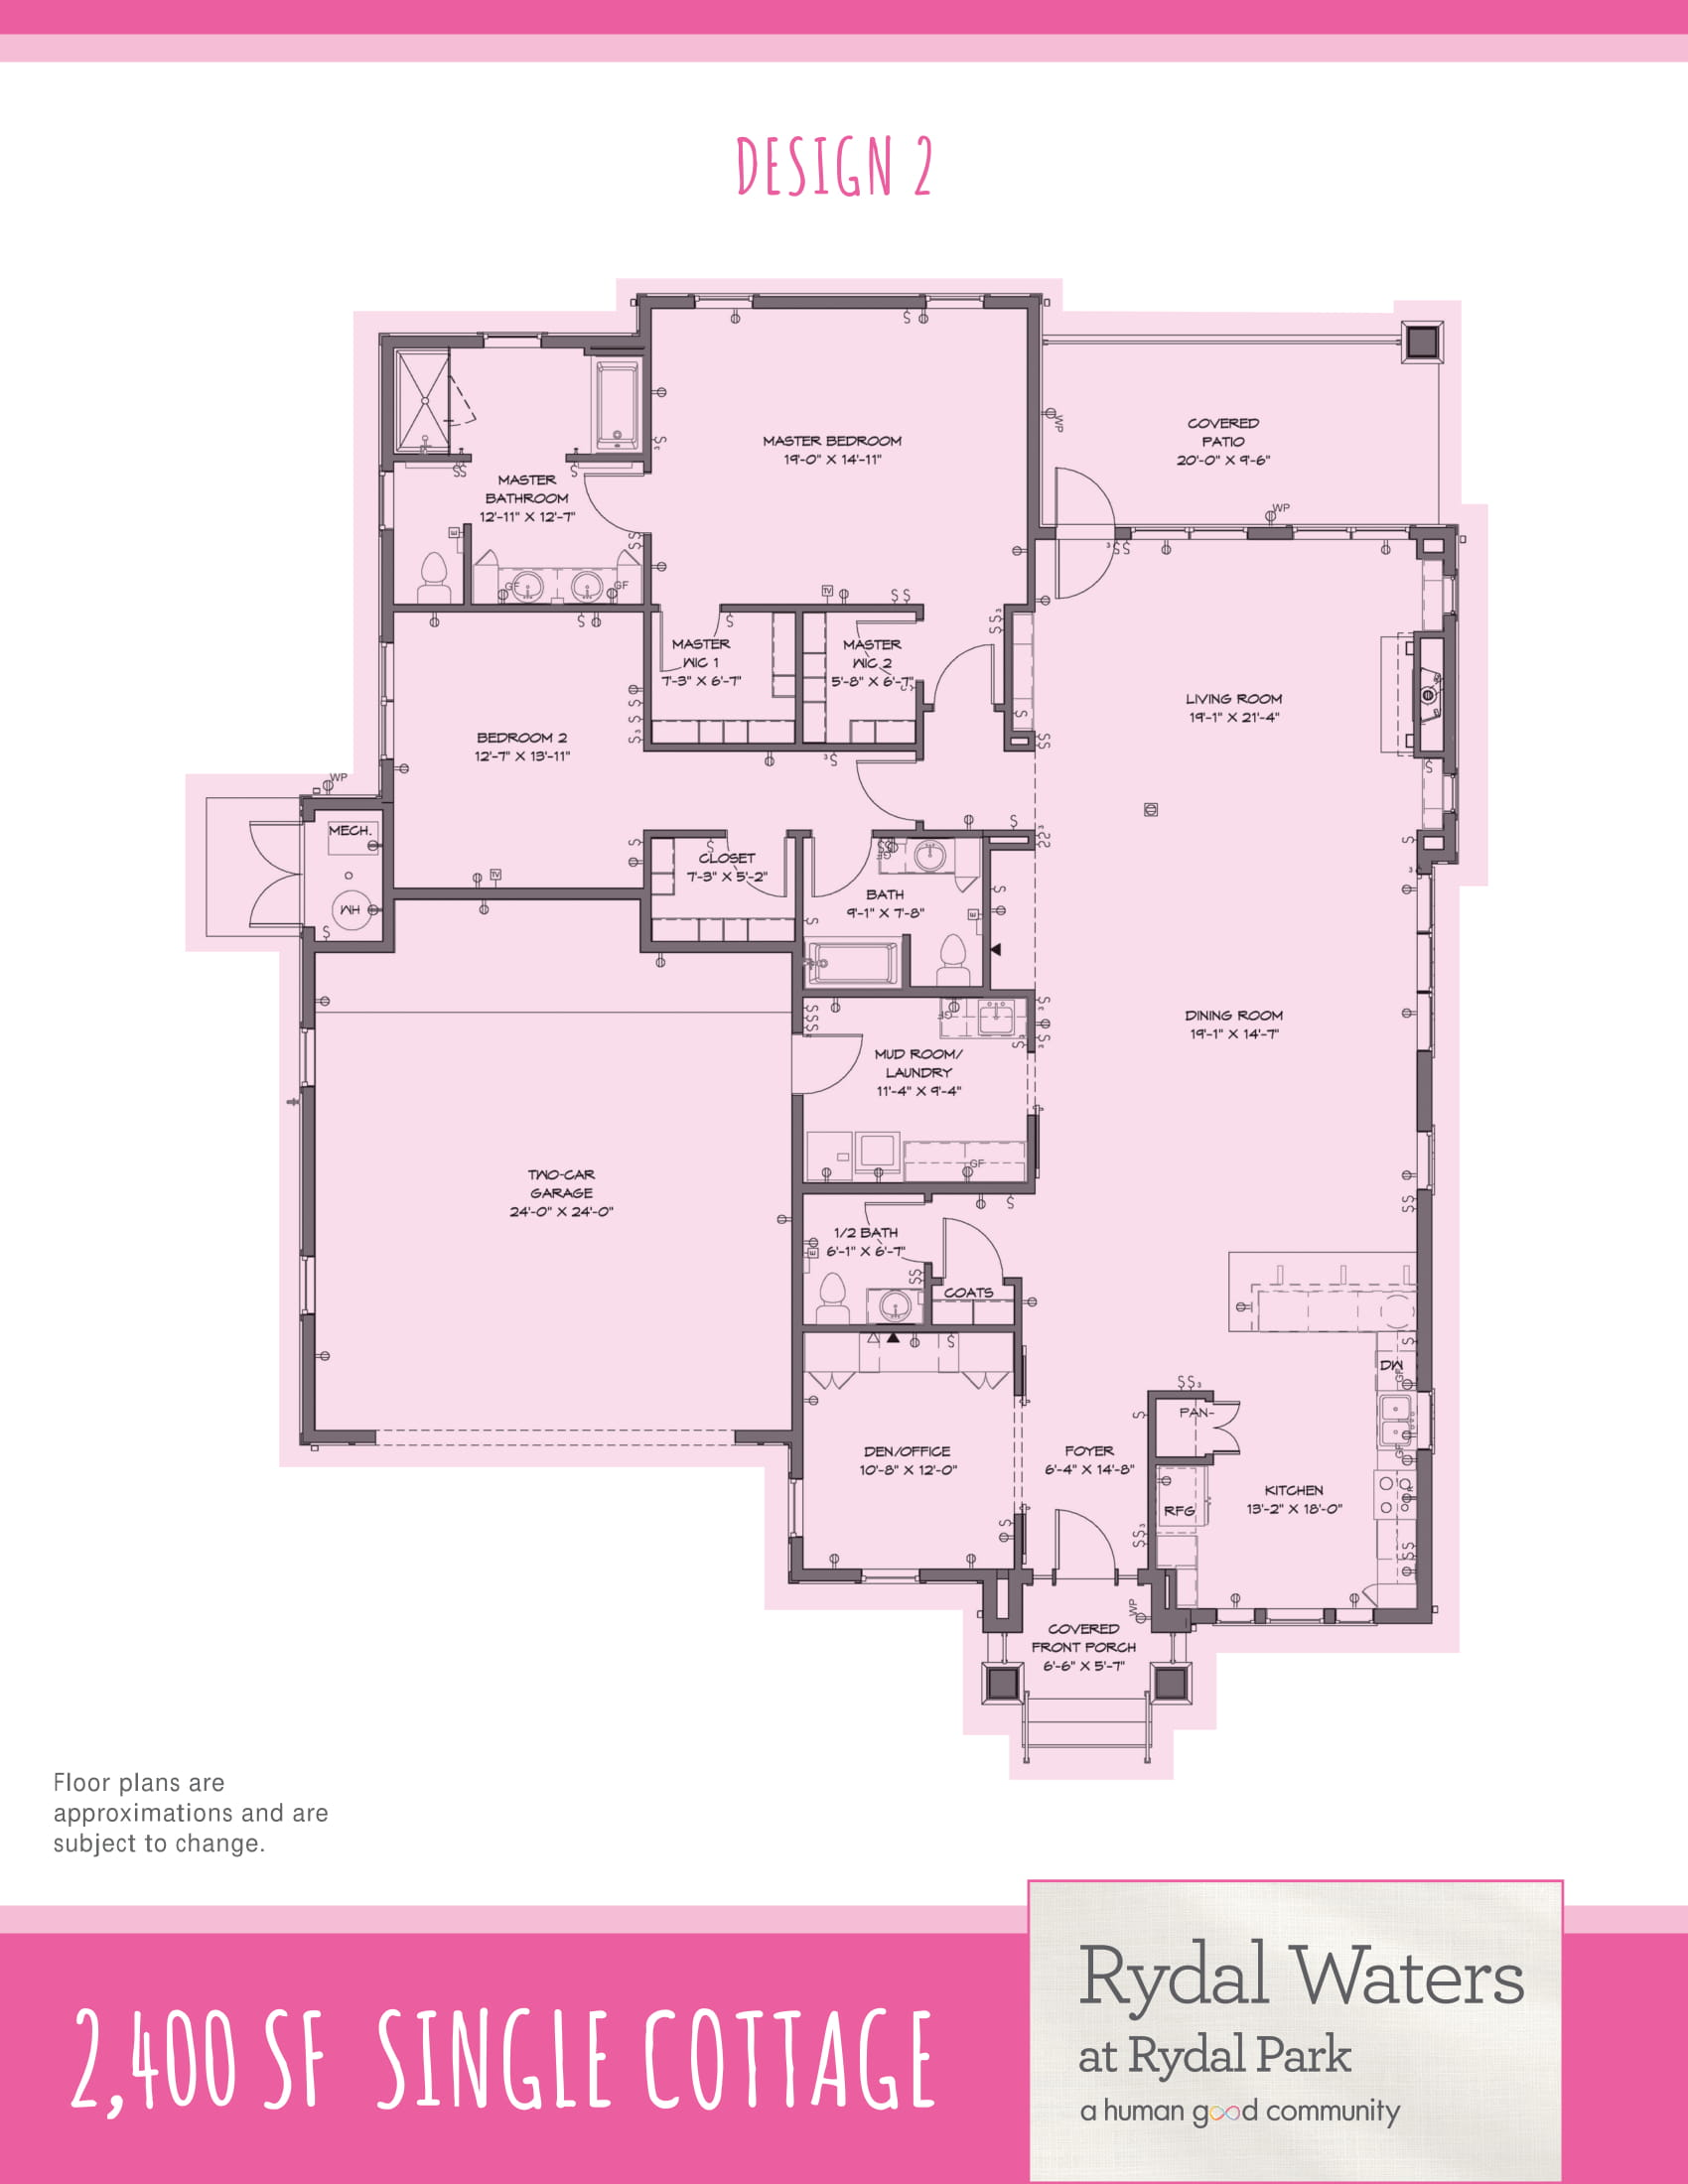 rydal-waters-cottage-2400_Design2-1